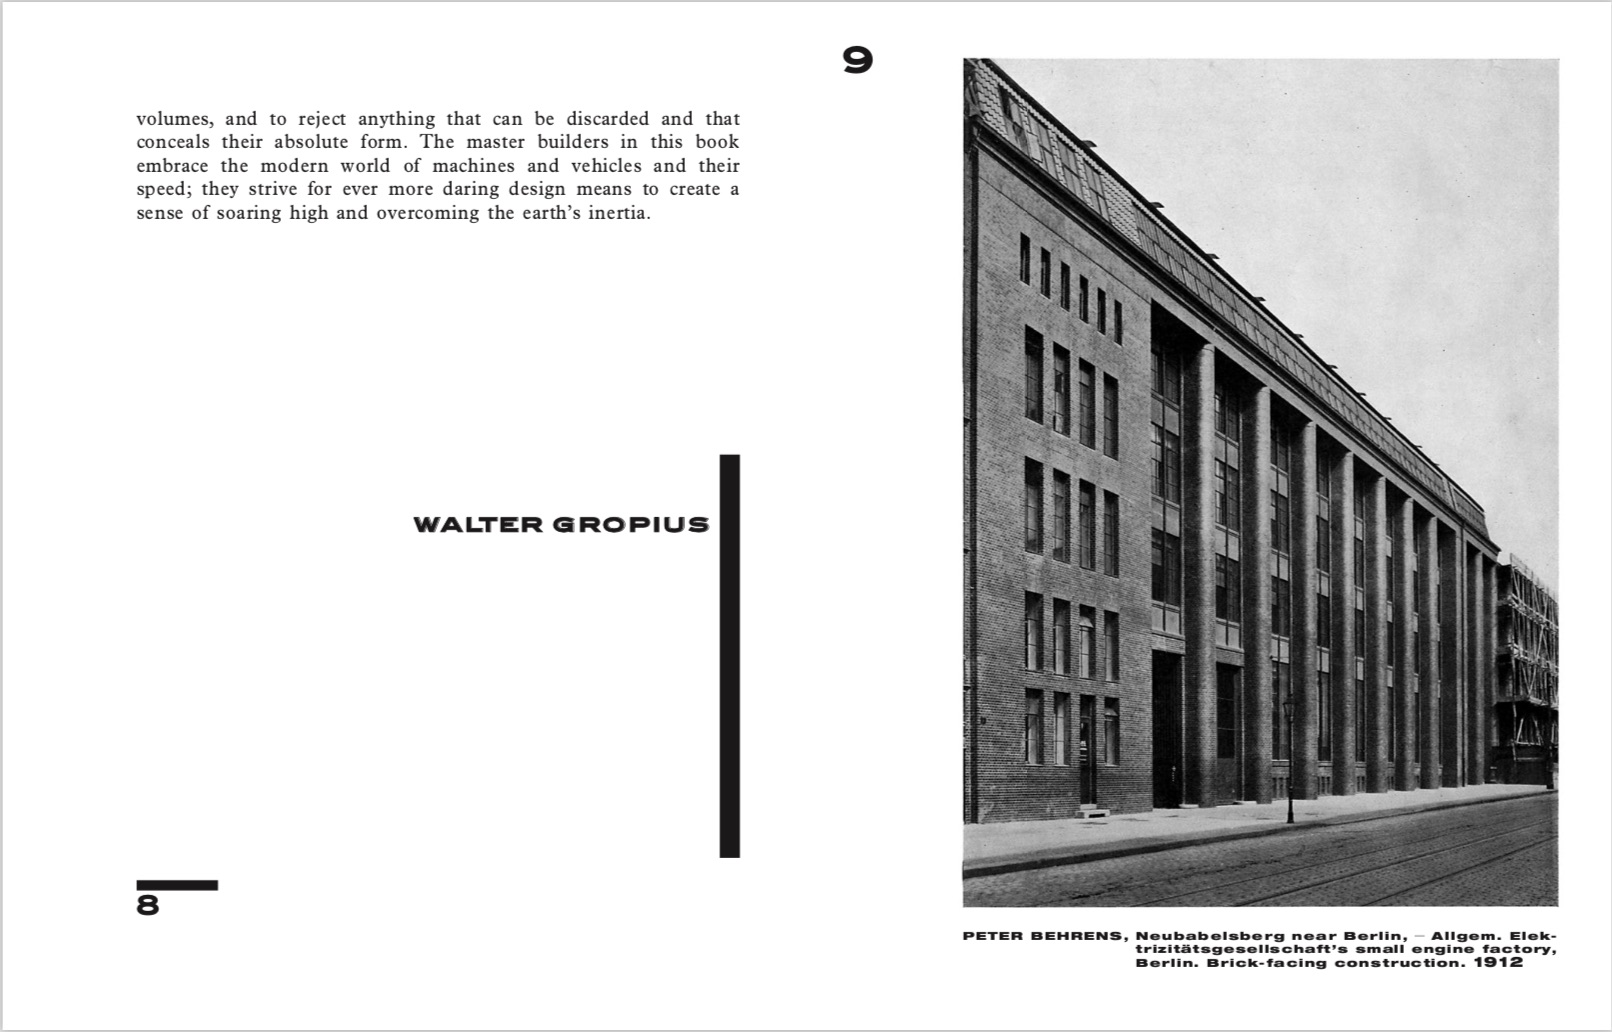 By Lars Muller Publishers from Walter Gropius. International Architecture copyright Lars Muller Publishers 2019